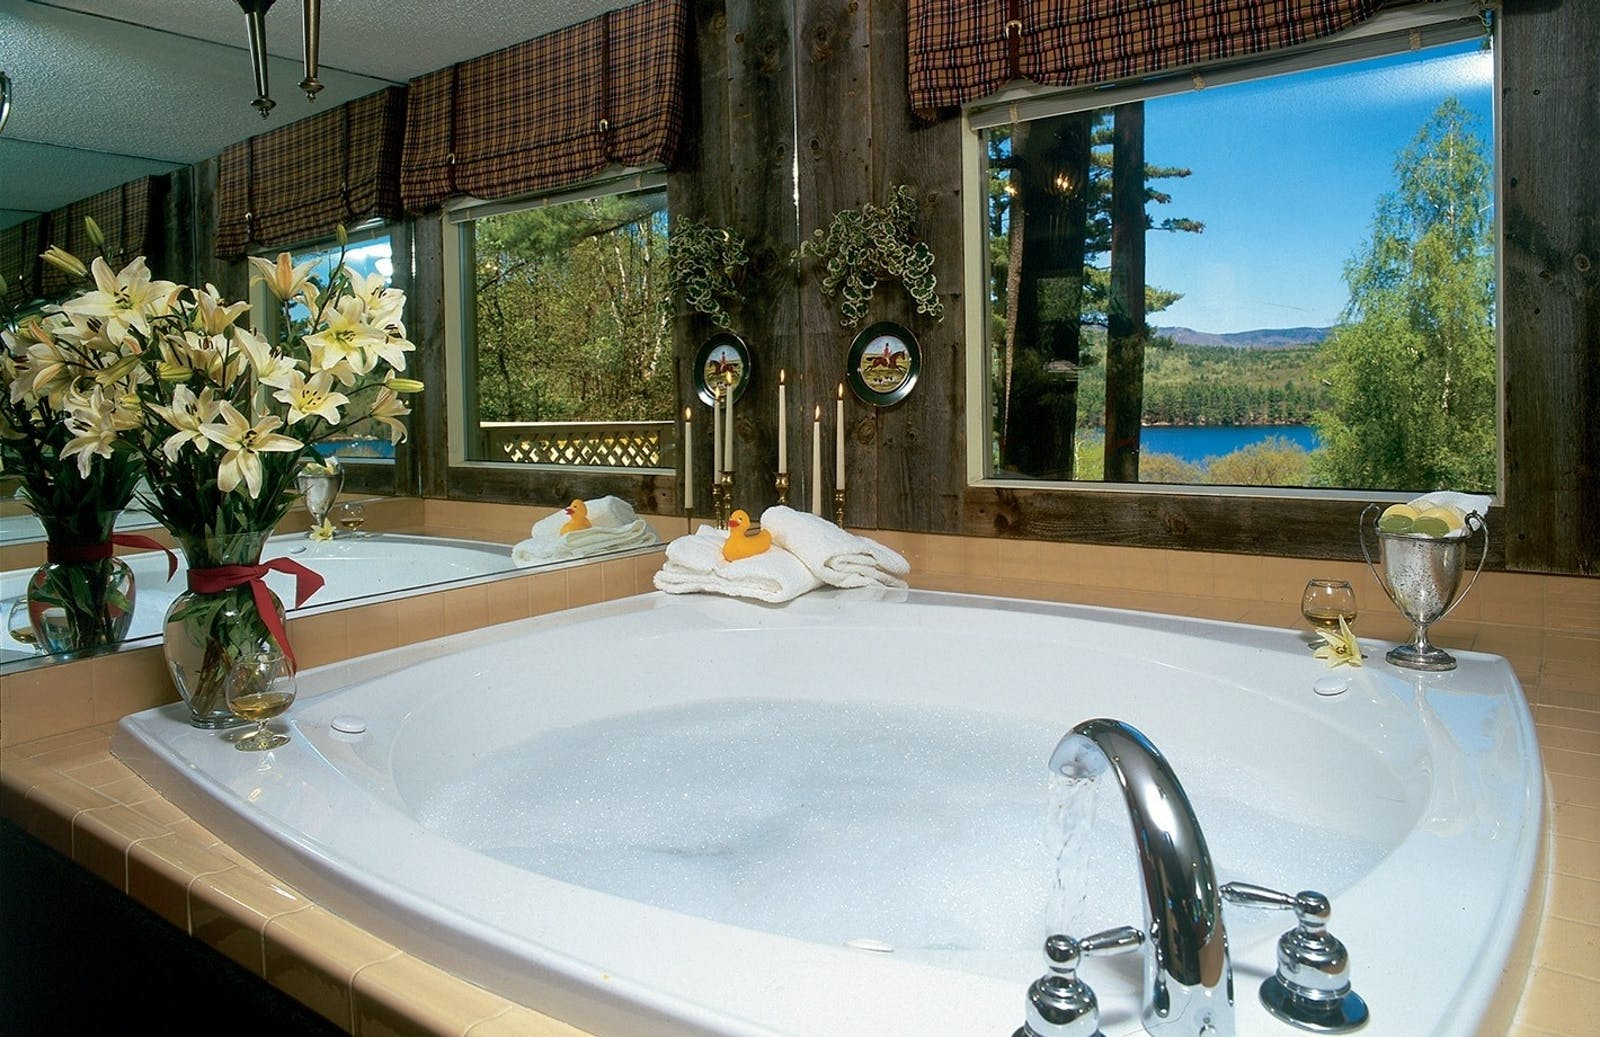 Berkshire Bathroom at Manor on Golden Pond, New Hampshire